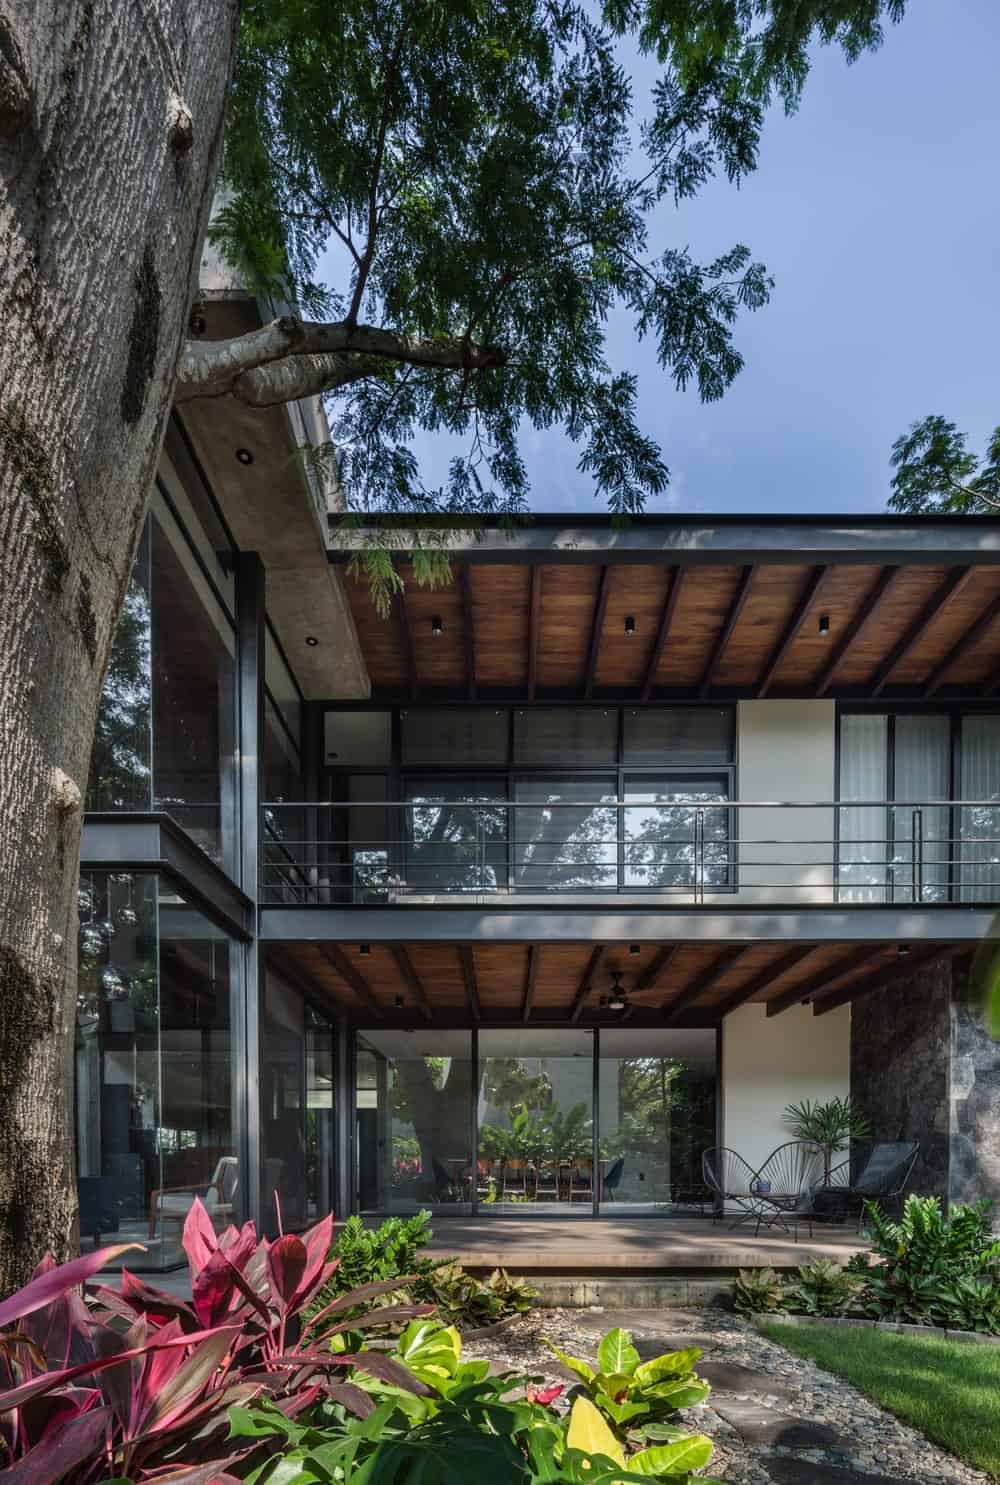 This view of the back of the house showcases the beamed ceiling of the balcony and the patio nderneath.